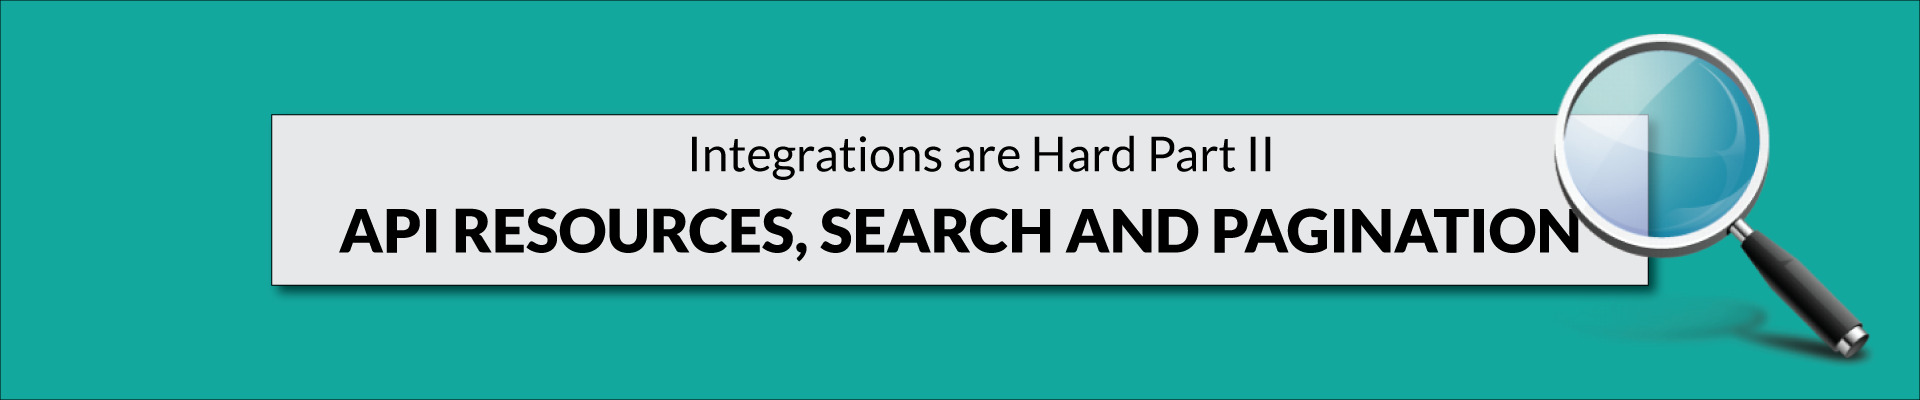 Integrations-are-hard-part-2-1